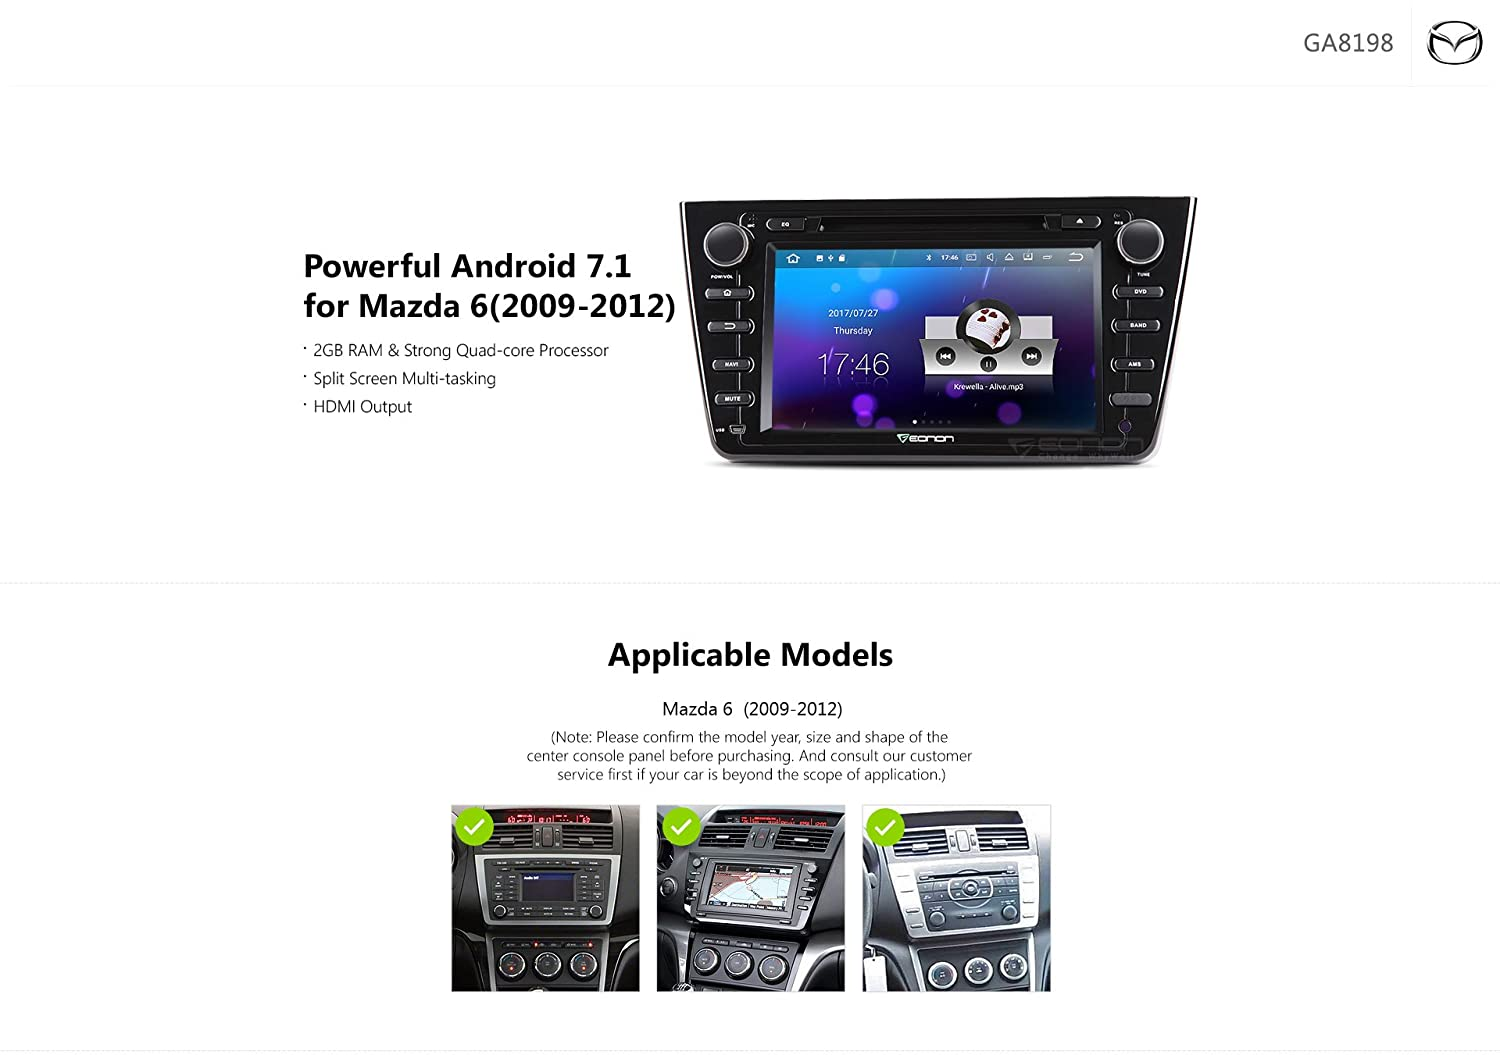 Eonon Autoradio 8 Zoll Android 71 Doppel Din Auto Stereo Dvd Gps Double Wire Diagram Navigation Fr Mazda 6 2009 2012 Cd Player Untersttzung Sat Nav Bluetooth Radio Dab